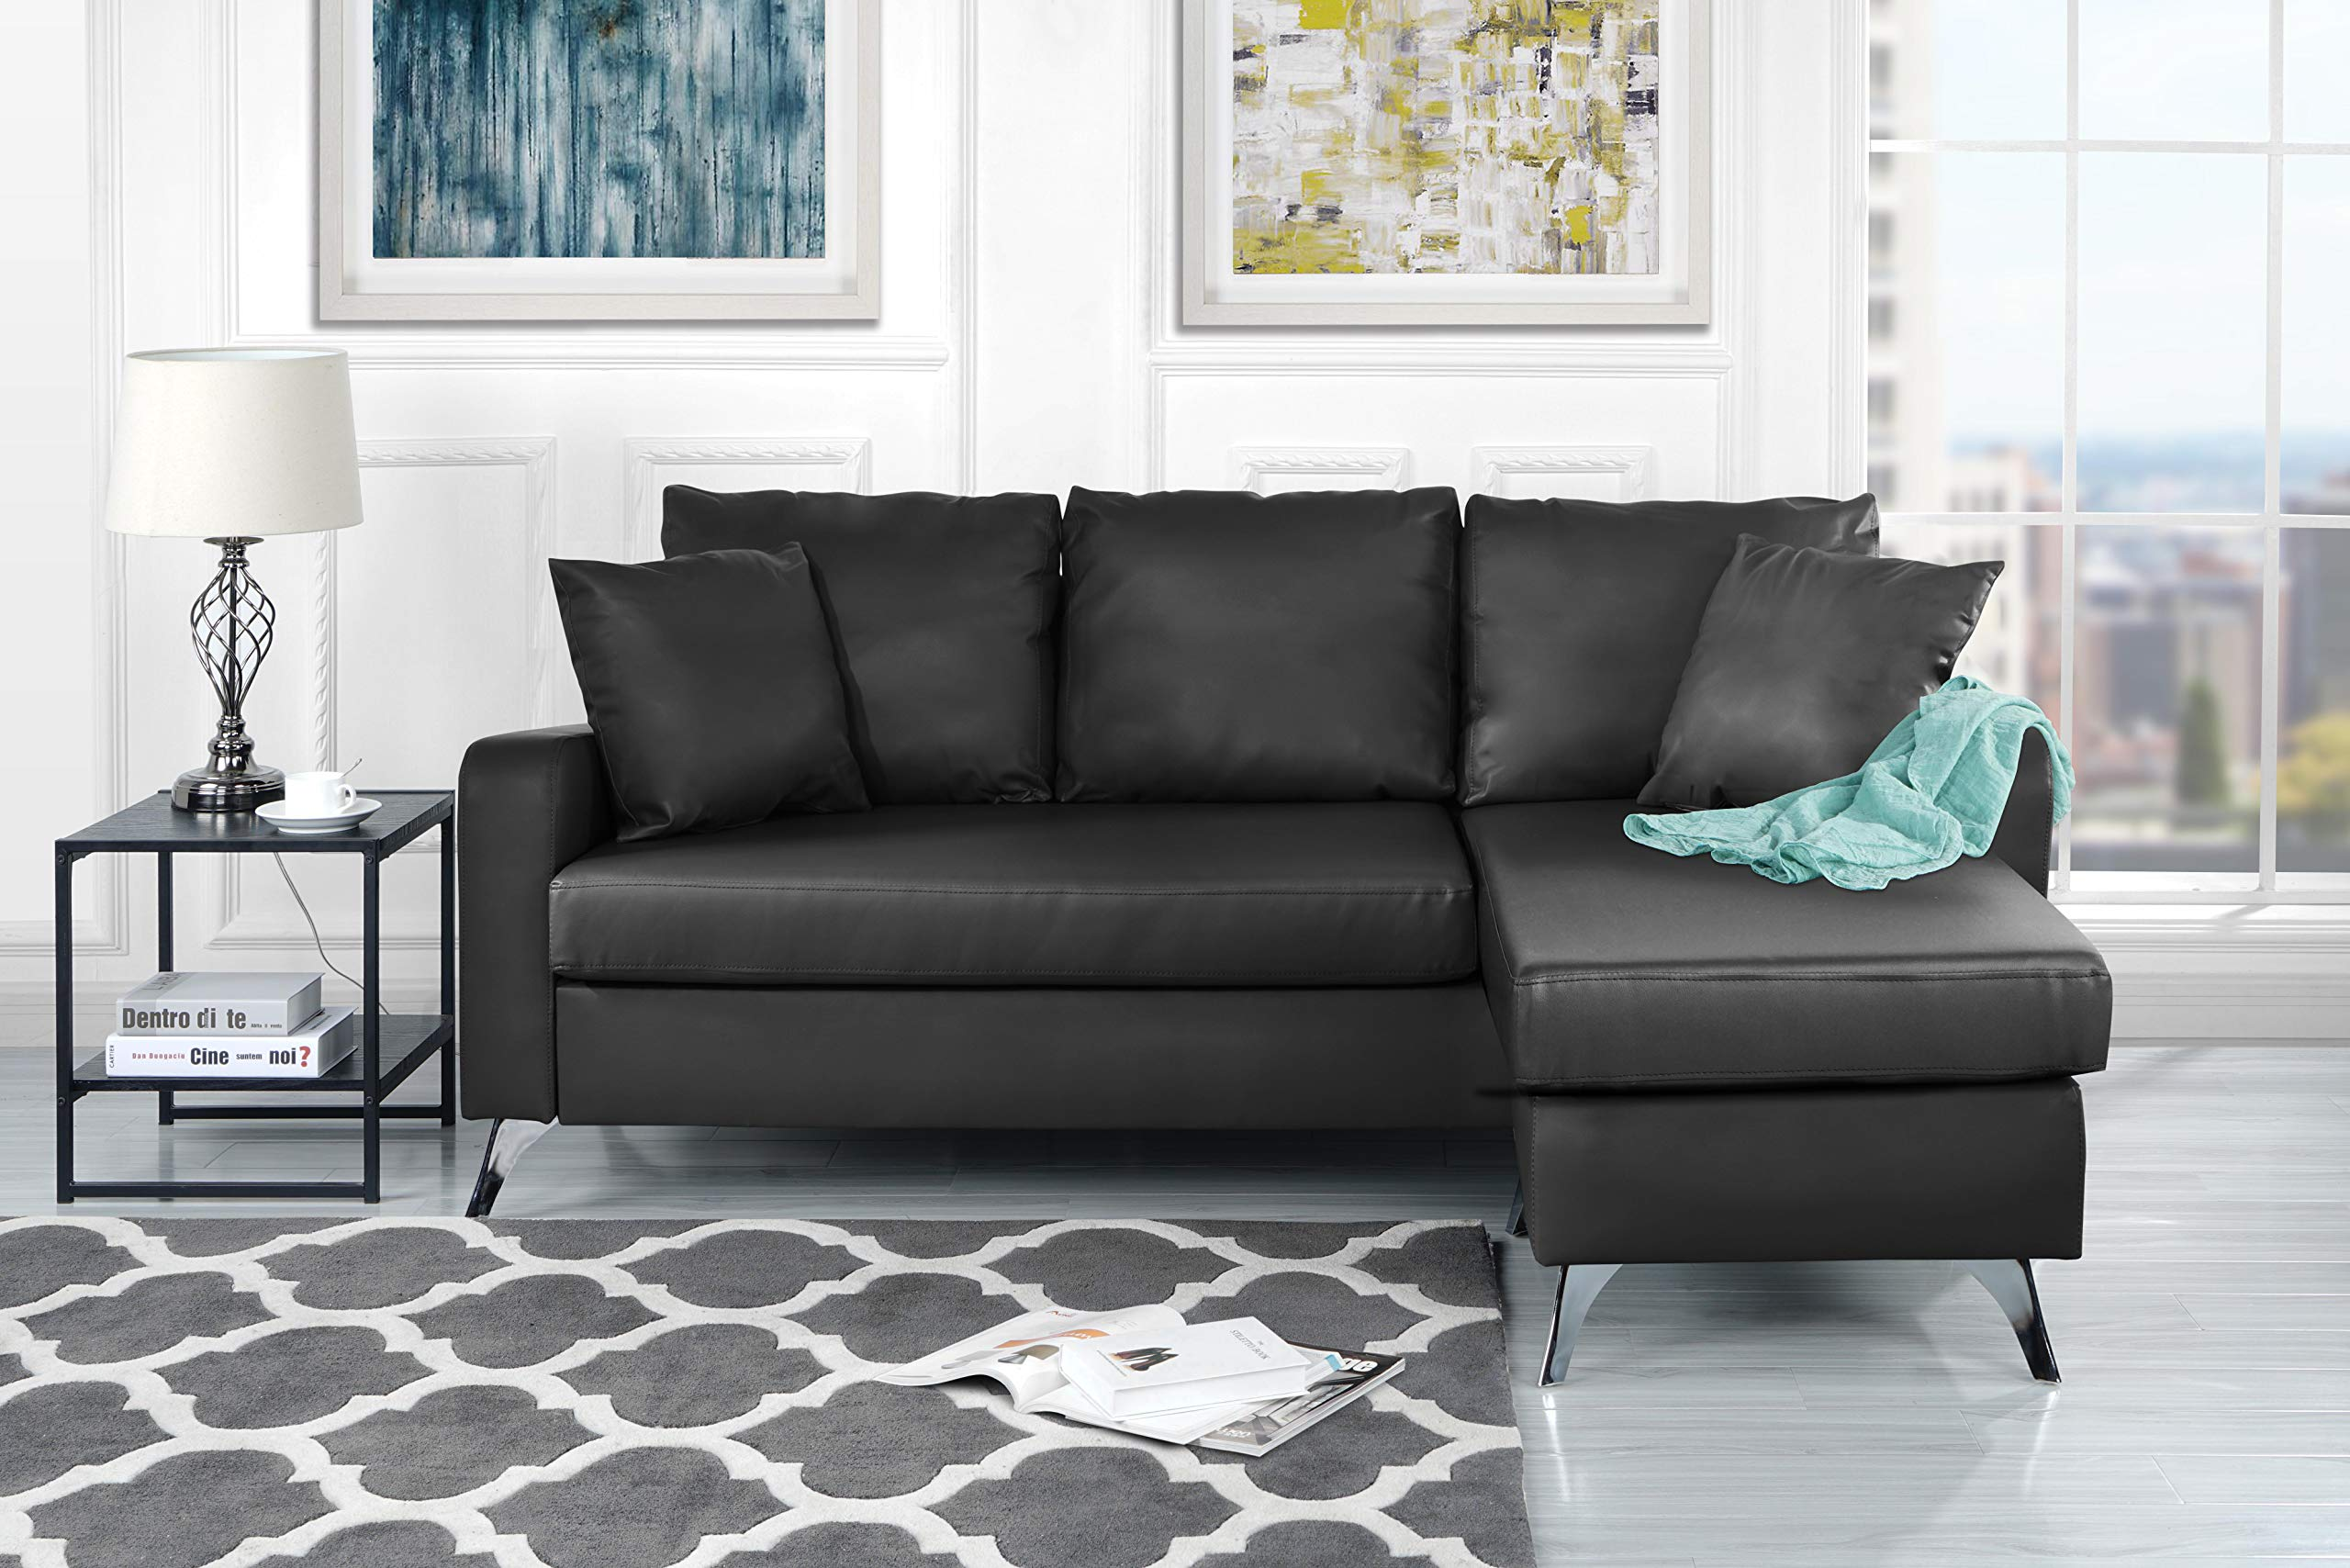 "Divano Roma Furniture Bonded Leather Sectional Sofa - Small Space Configurable Couch (Dark Grey) - Bonded Leather small space reversible chaise sectional sofa Durable bonded leather upholstery with hardwood frame and chrome finish metal legs Measures: 76""W x 54""D x 34""H inches - sofas-couches, living-room-furniture, living-room - 81DUpn%2BPCkL -"